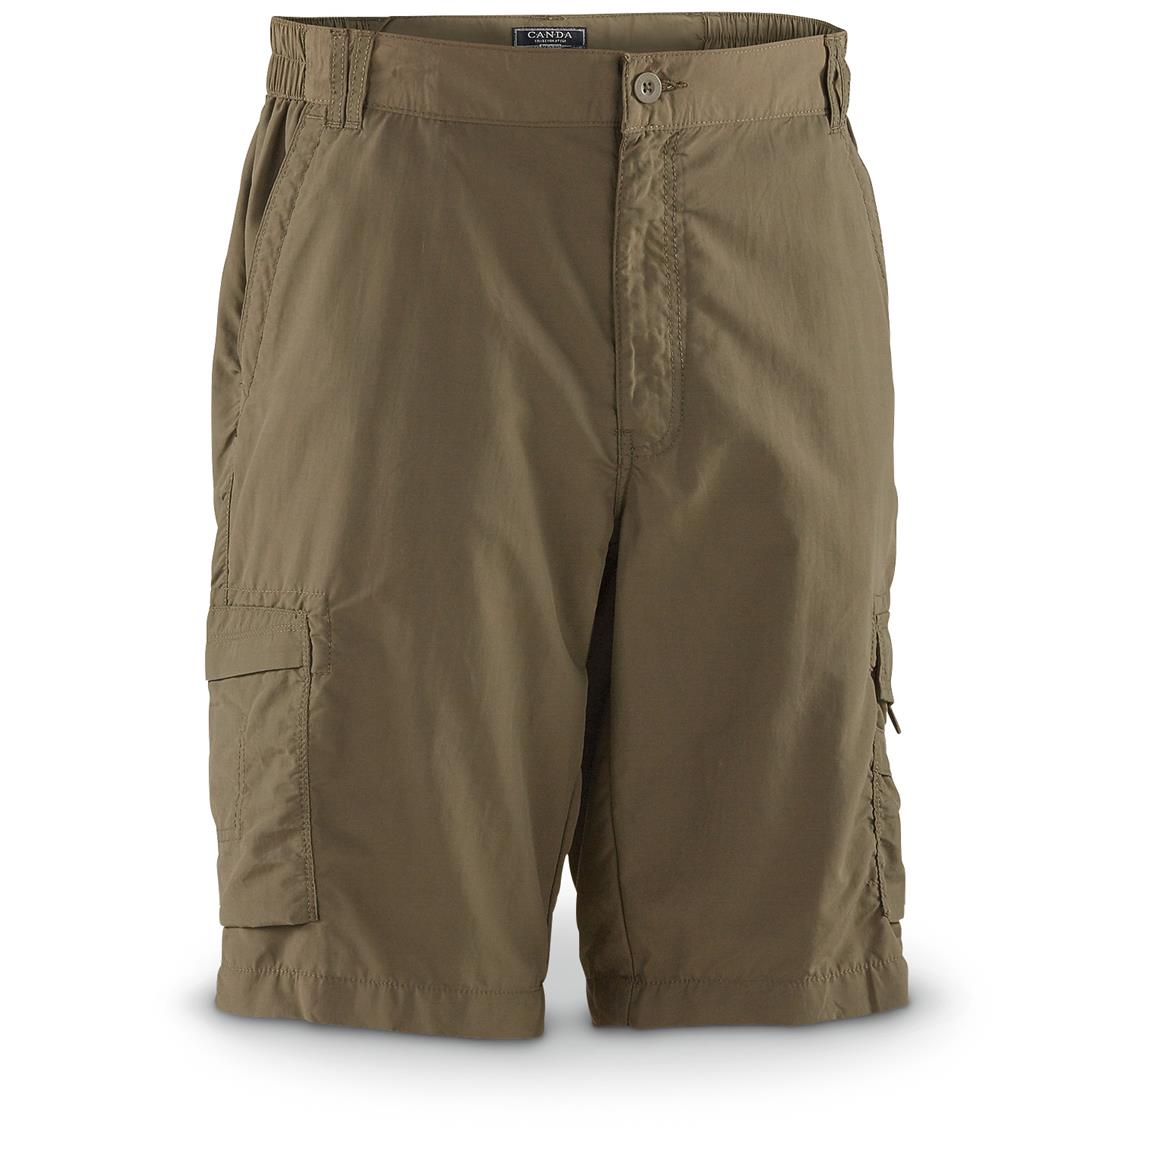 Men's German Military Surplus Cargo Shorts, New